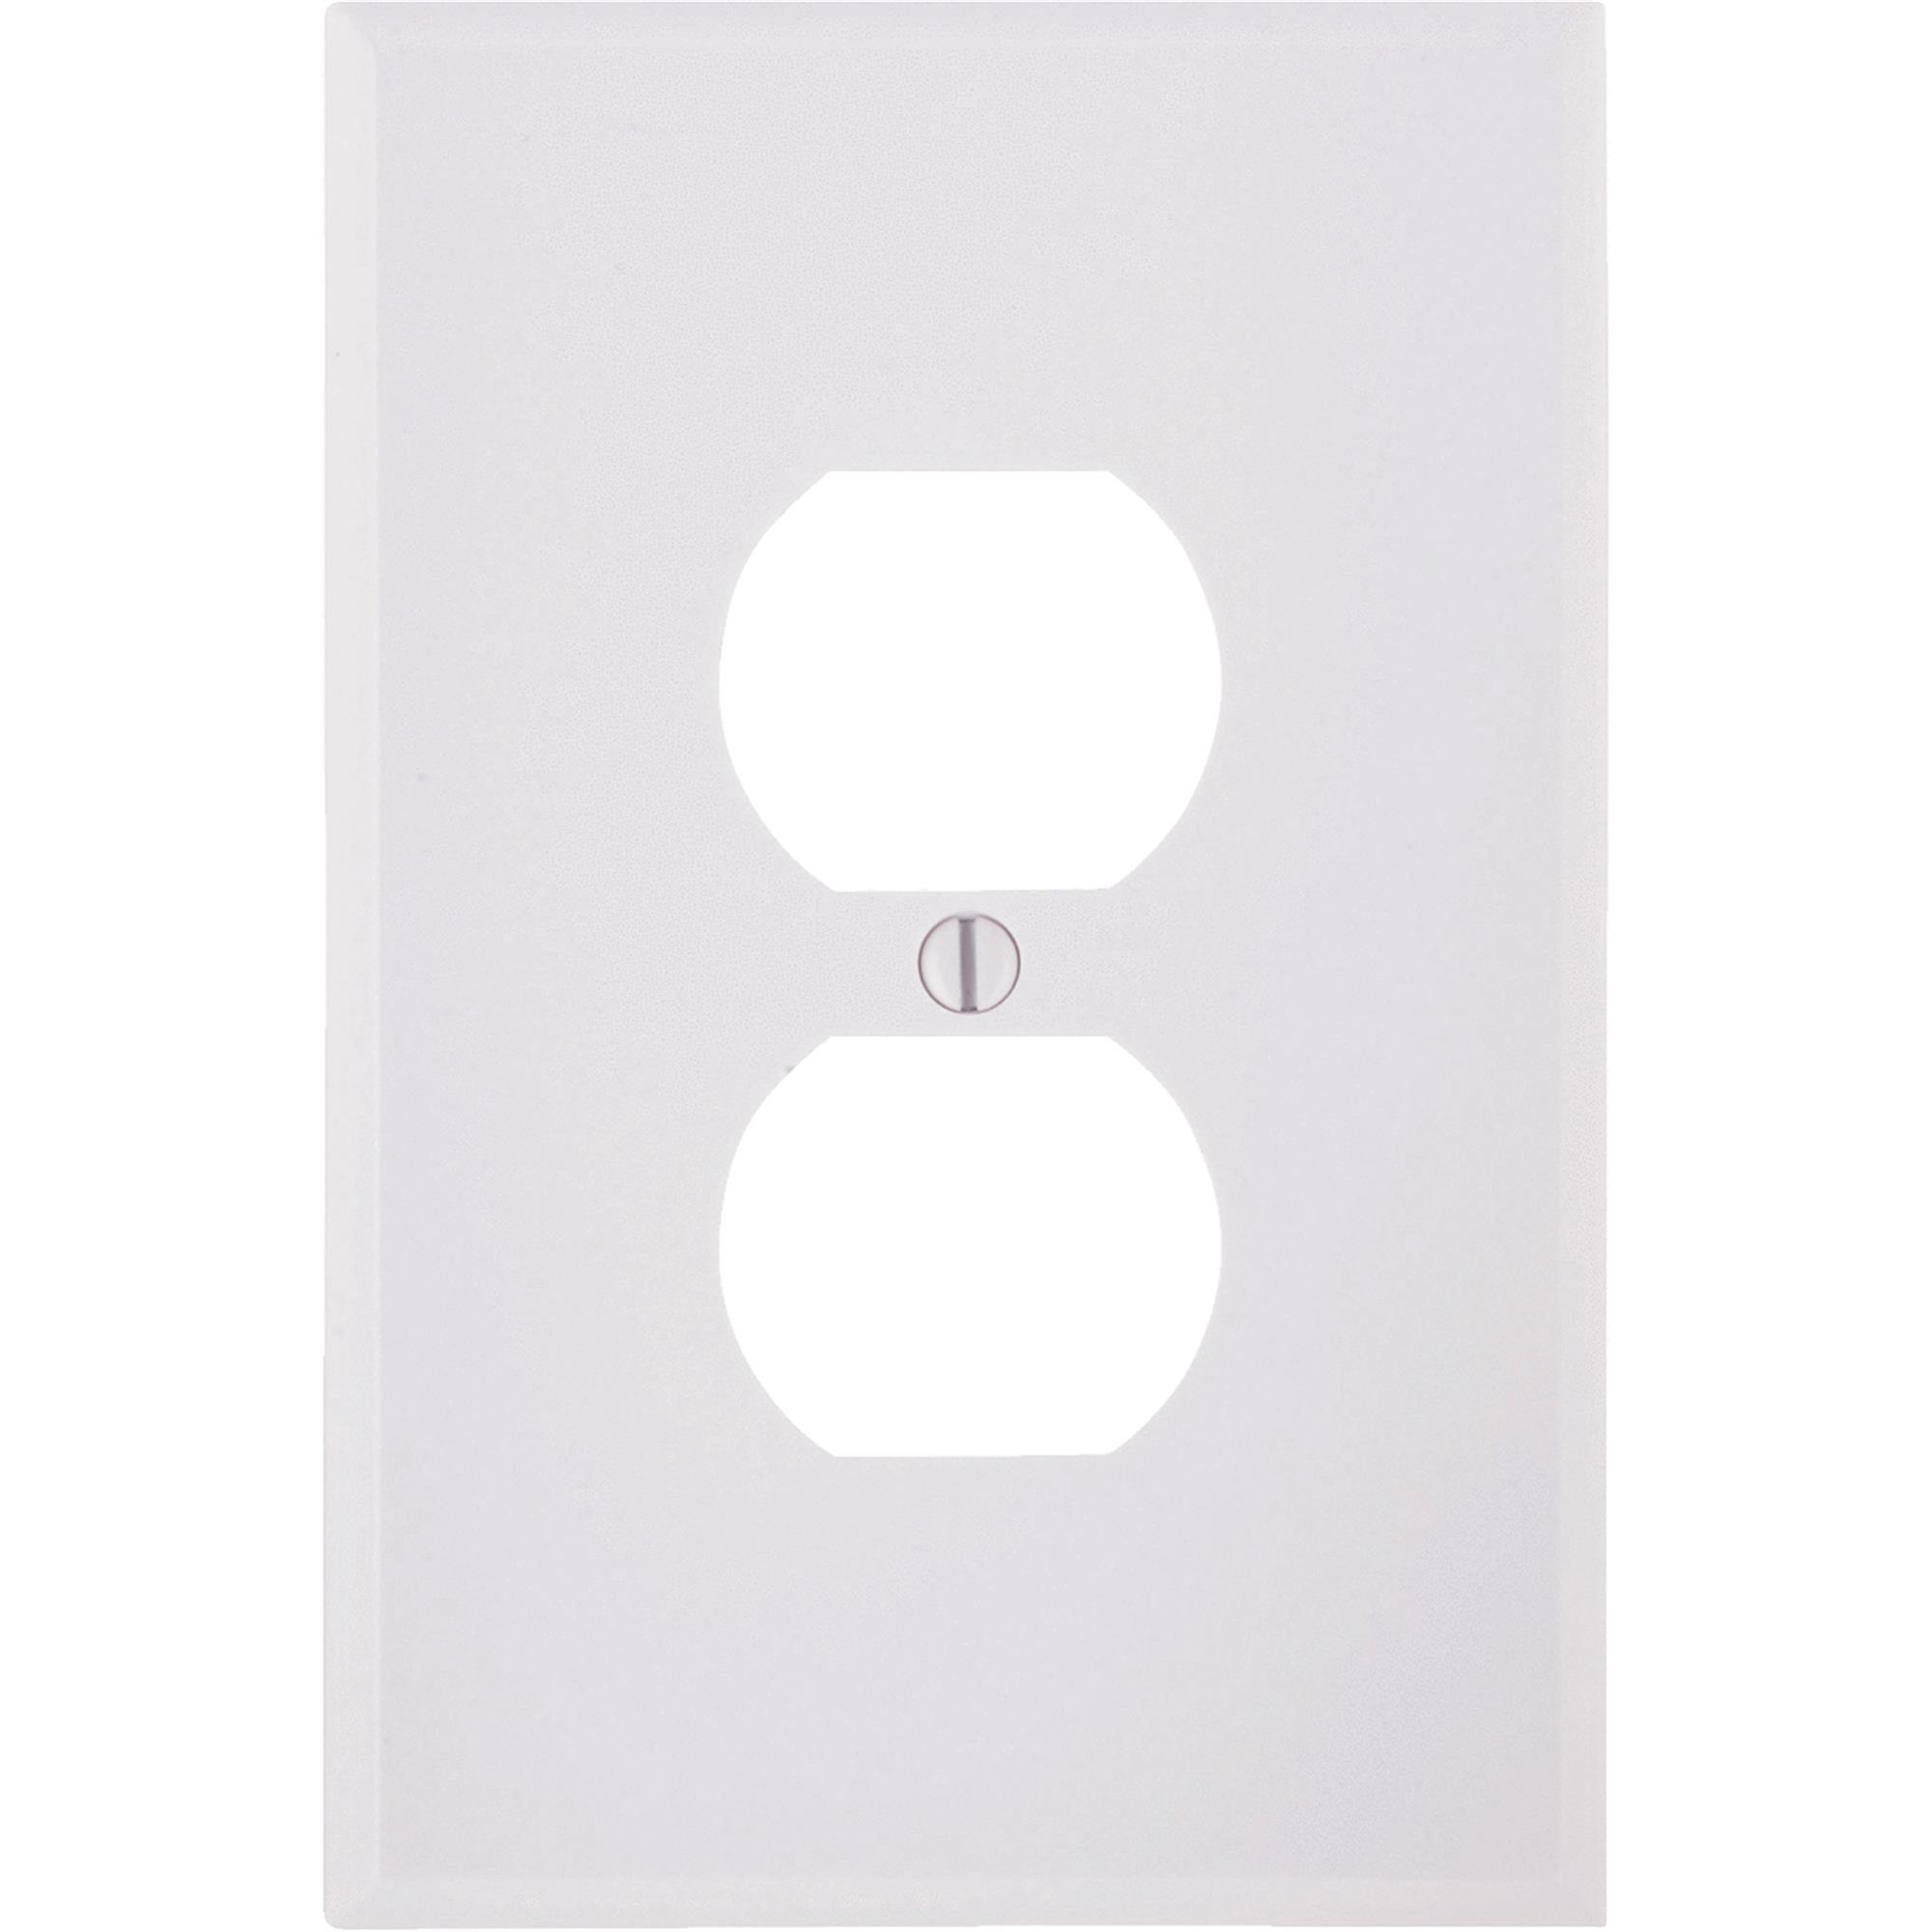 Leviton Oversized Outlet Wall Plate by Leviton